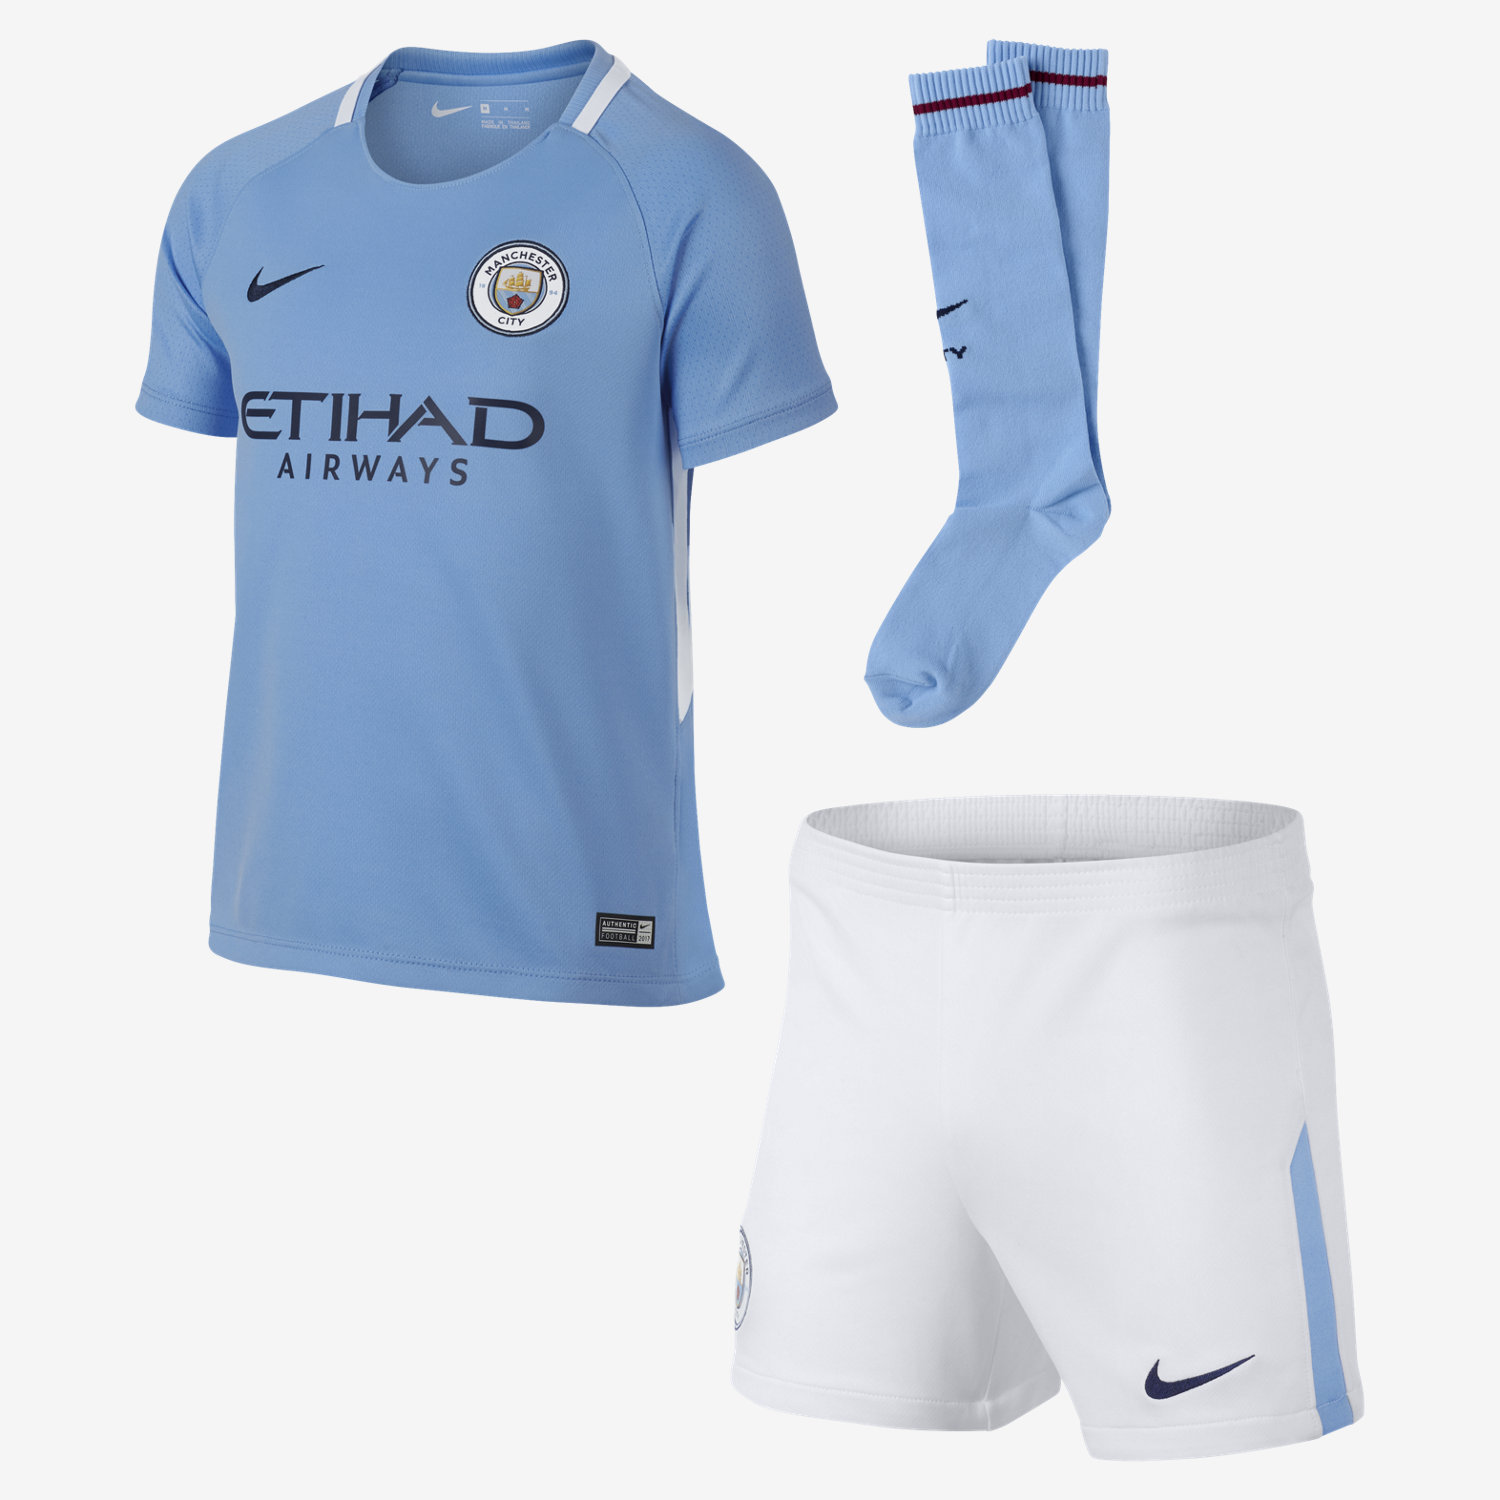 Nike Jr. Breathe Manchester City FC Kit 2017 18 - Soccer Premier a02b4b312b1c